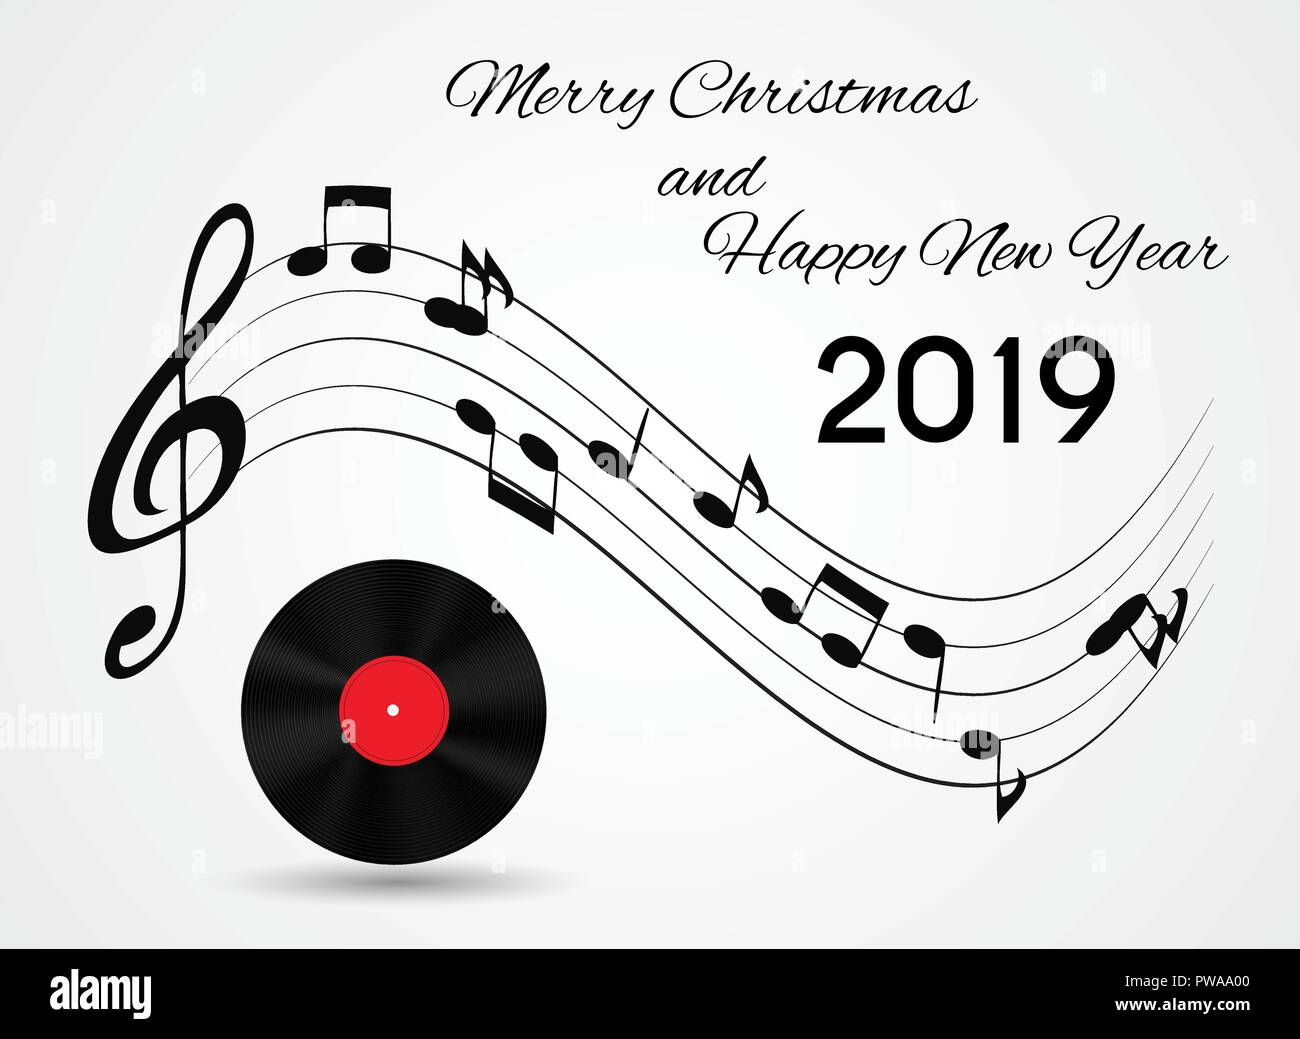 New Christmas Music 2019 2019 Happy New Year and Merry Christmas on Abstract music